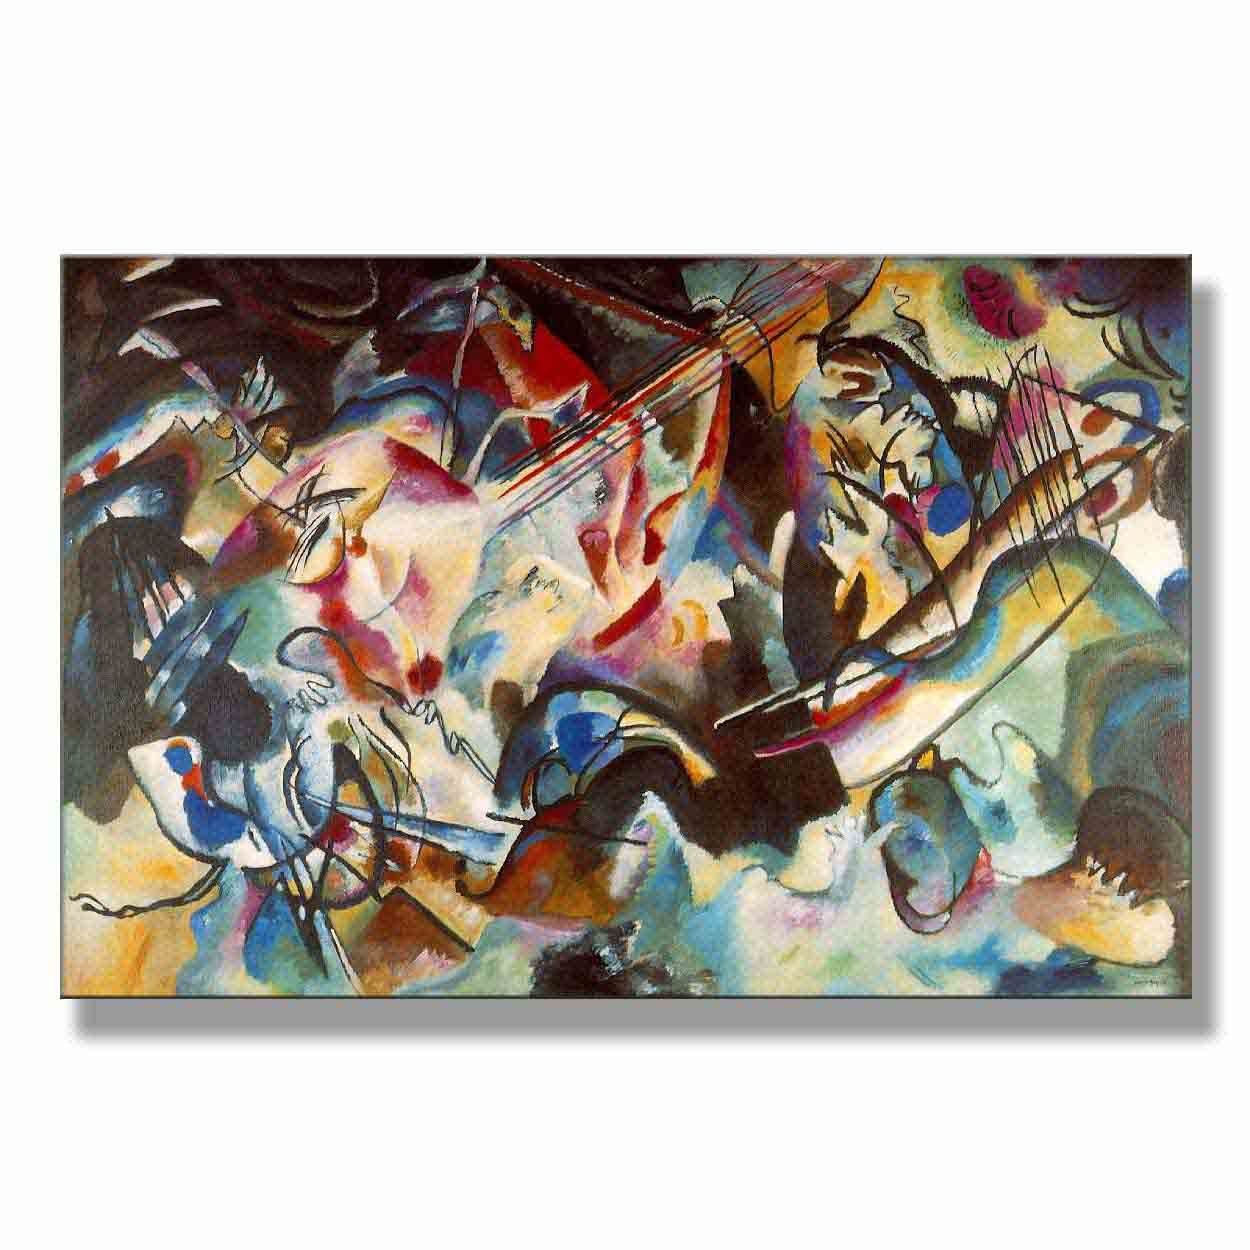 Wassily Kandinsky Composition 6 1913 Original Abstract Canvas Paintings Hand Painted Reproduction Unframed Tablet - 48X32 inch (122X81 cm) for Living Room Bedroom Dining Room Wall Decor To DIY Frame